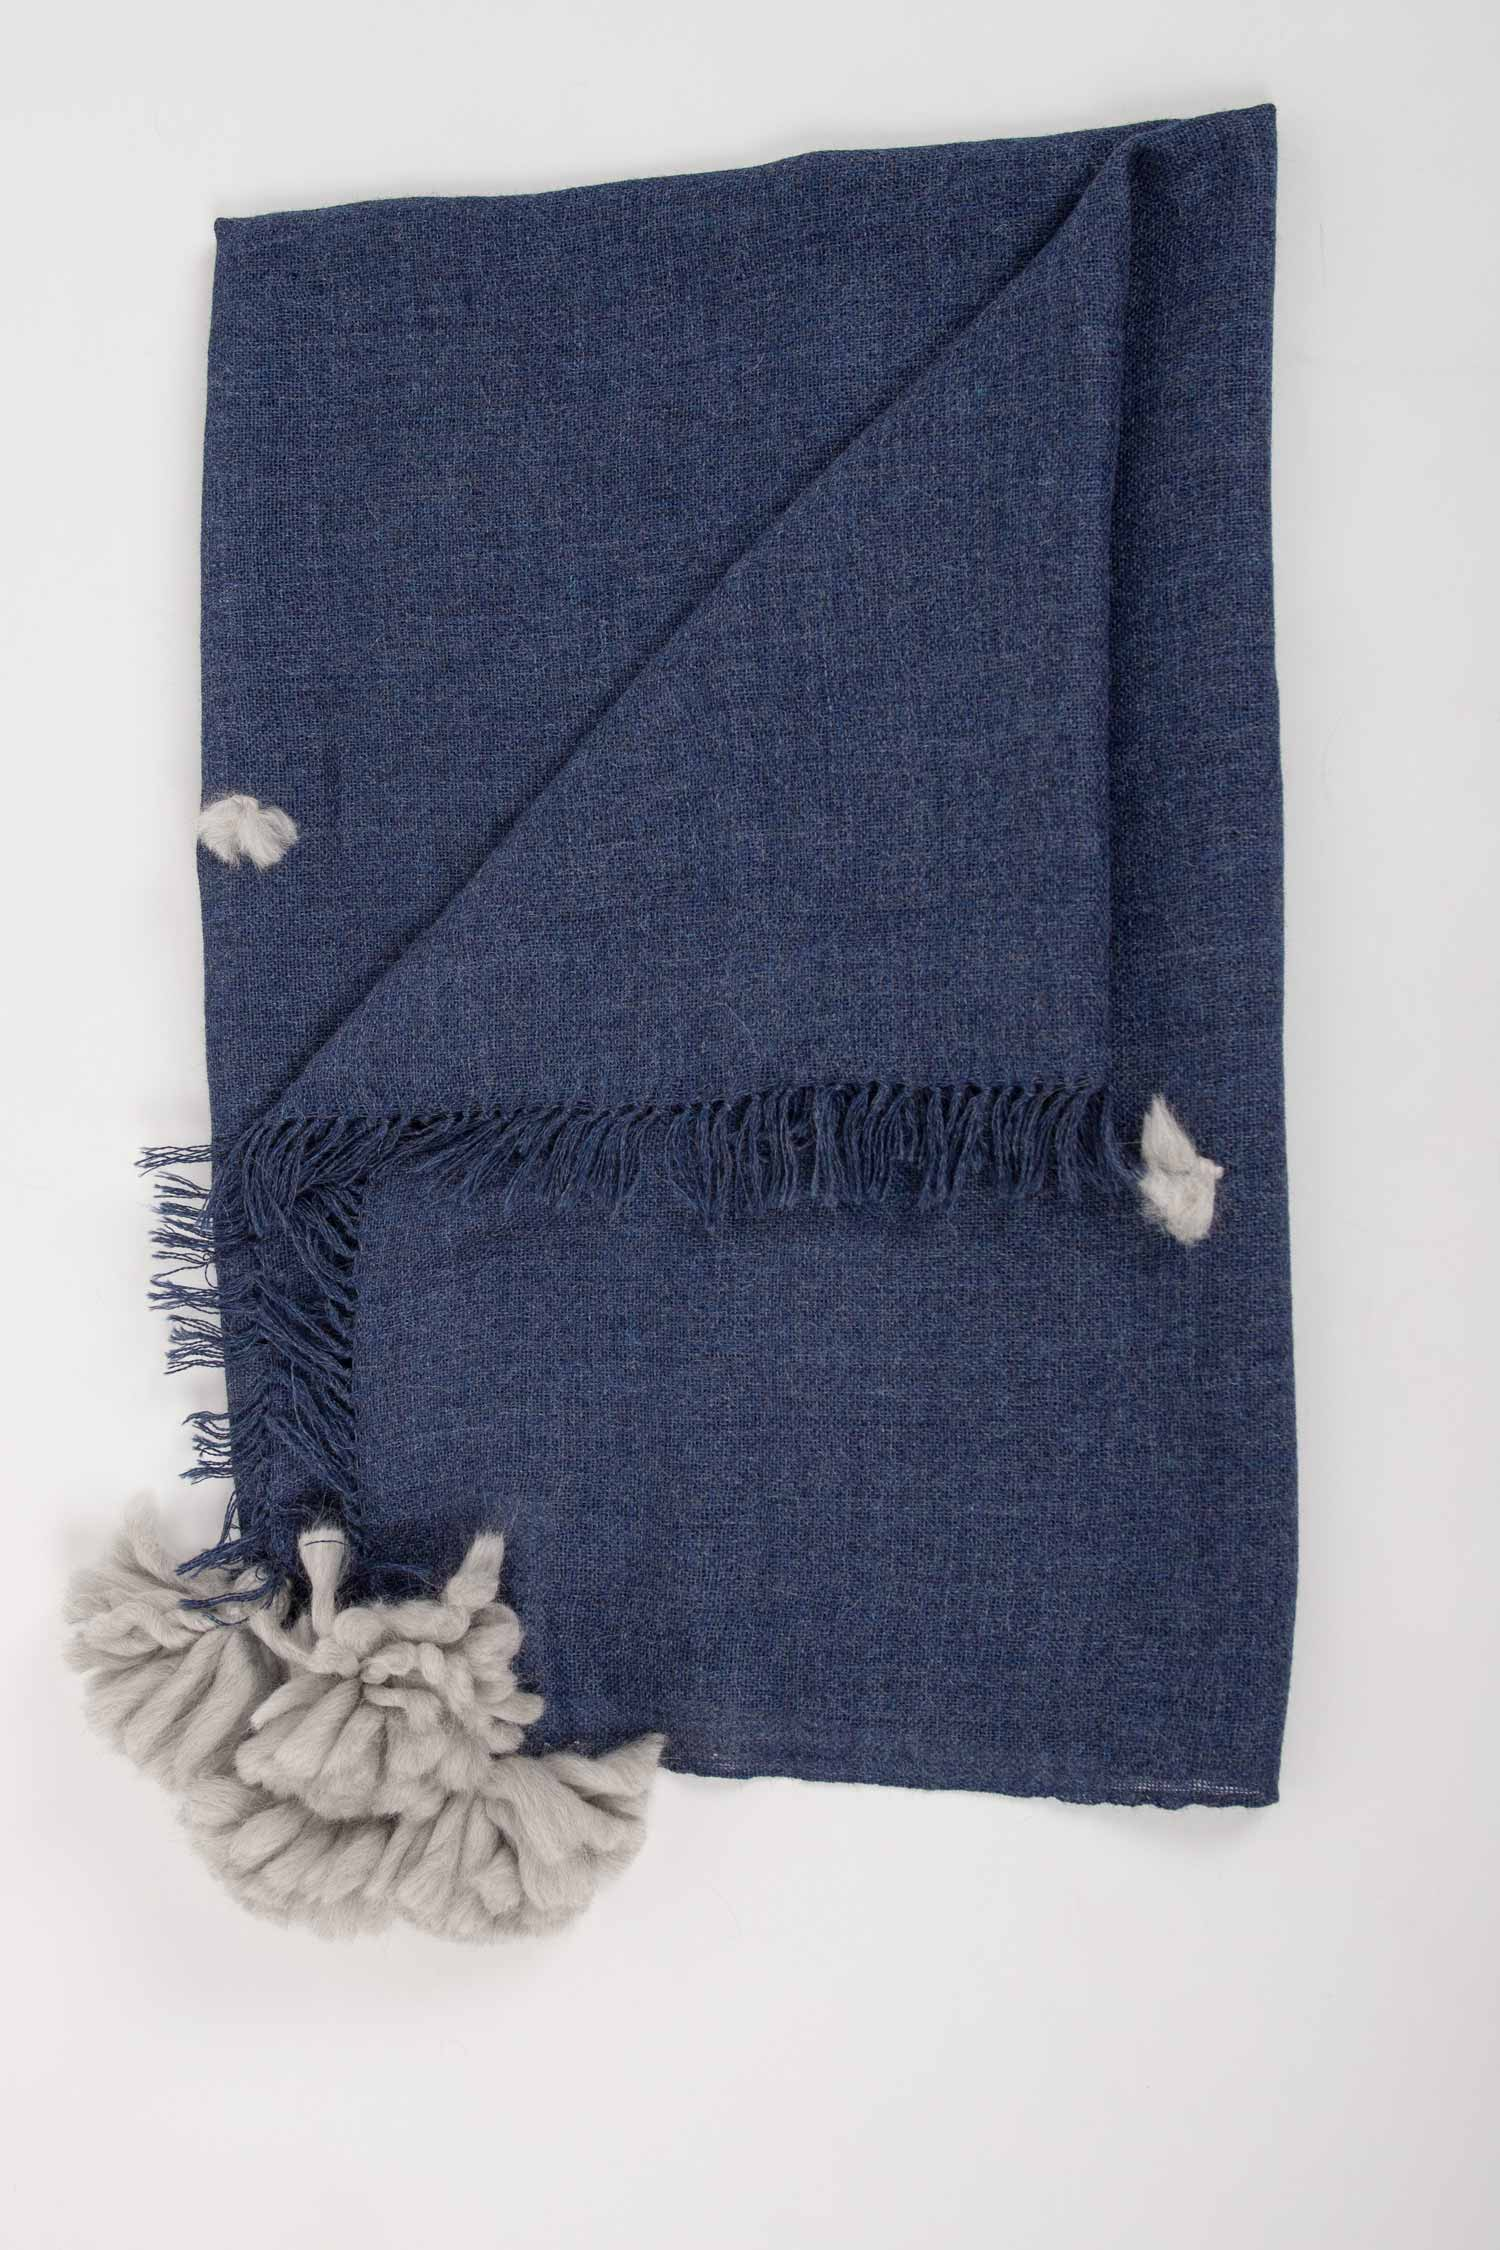 Indigo Blue Alpaca Blanket | Fair Trade Woven Tassel Blanket